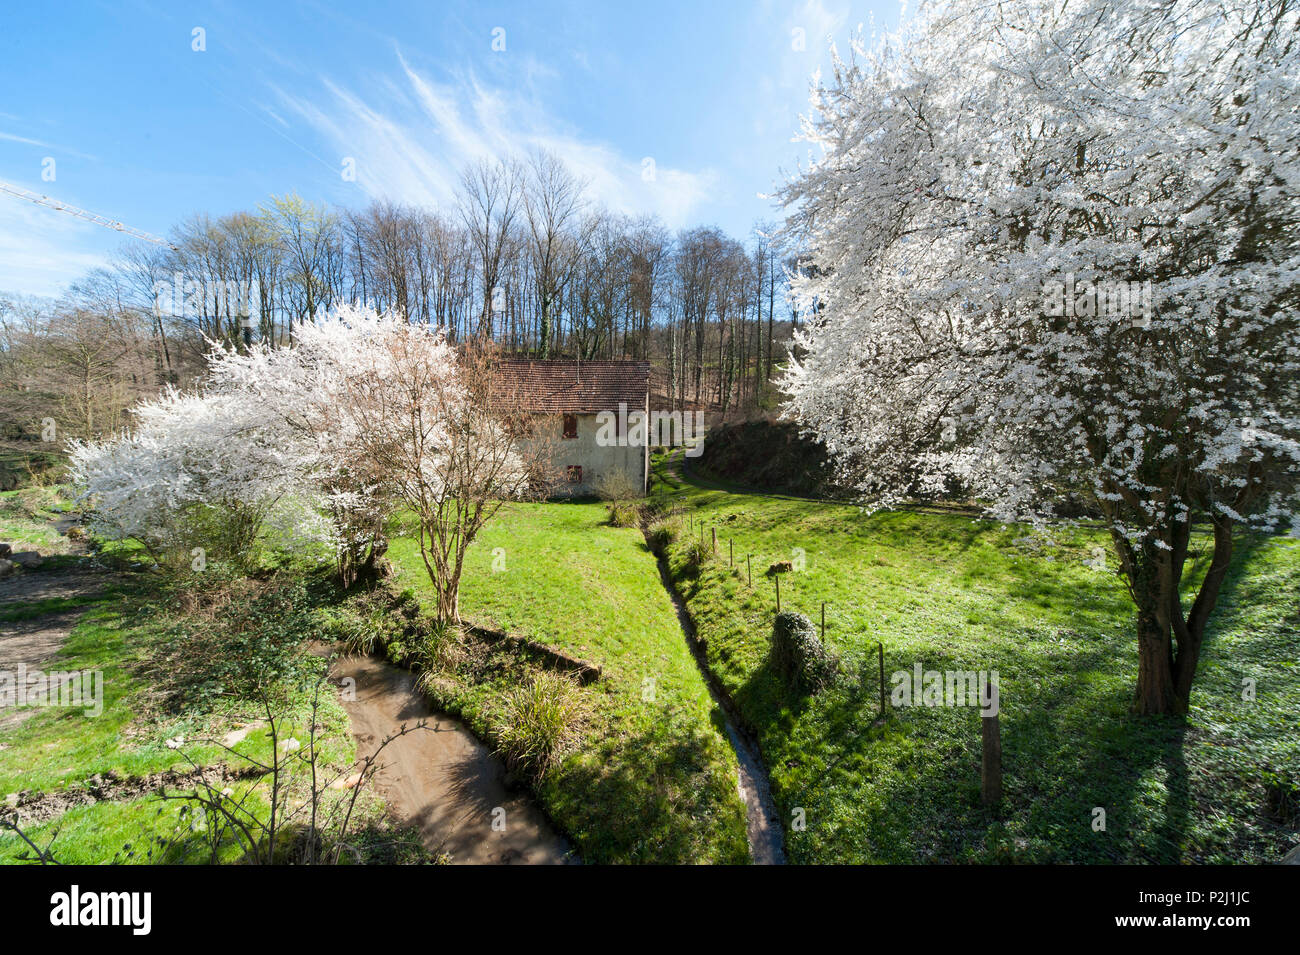 Flowering fruit tree and mill in Laudenbach valley, Laudenbach, Bergstrasse, Baden-Wuerttemberg, Germany - Stock Image